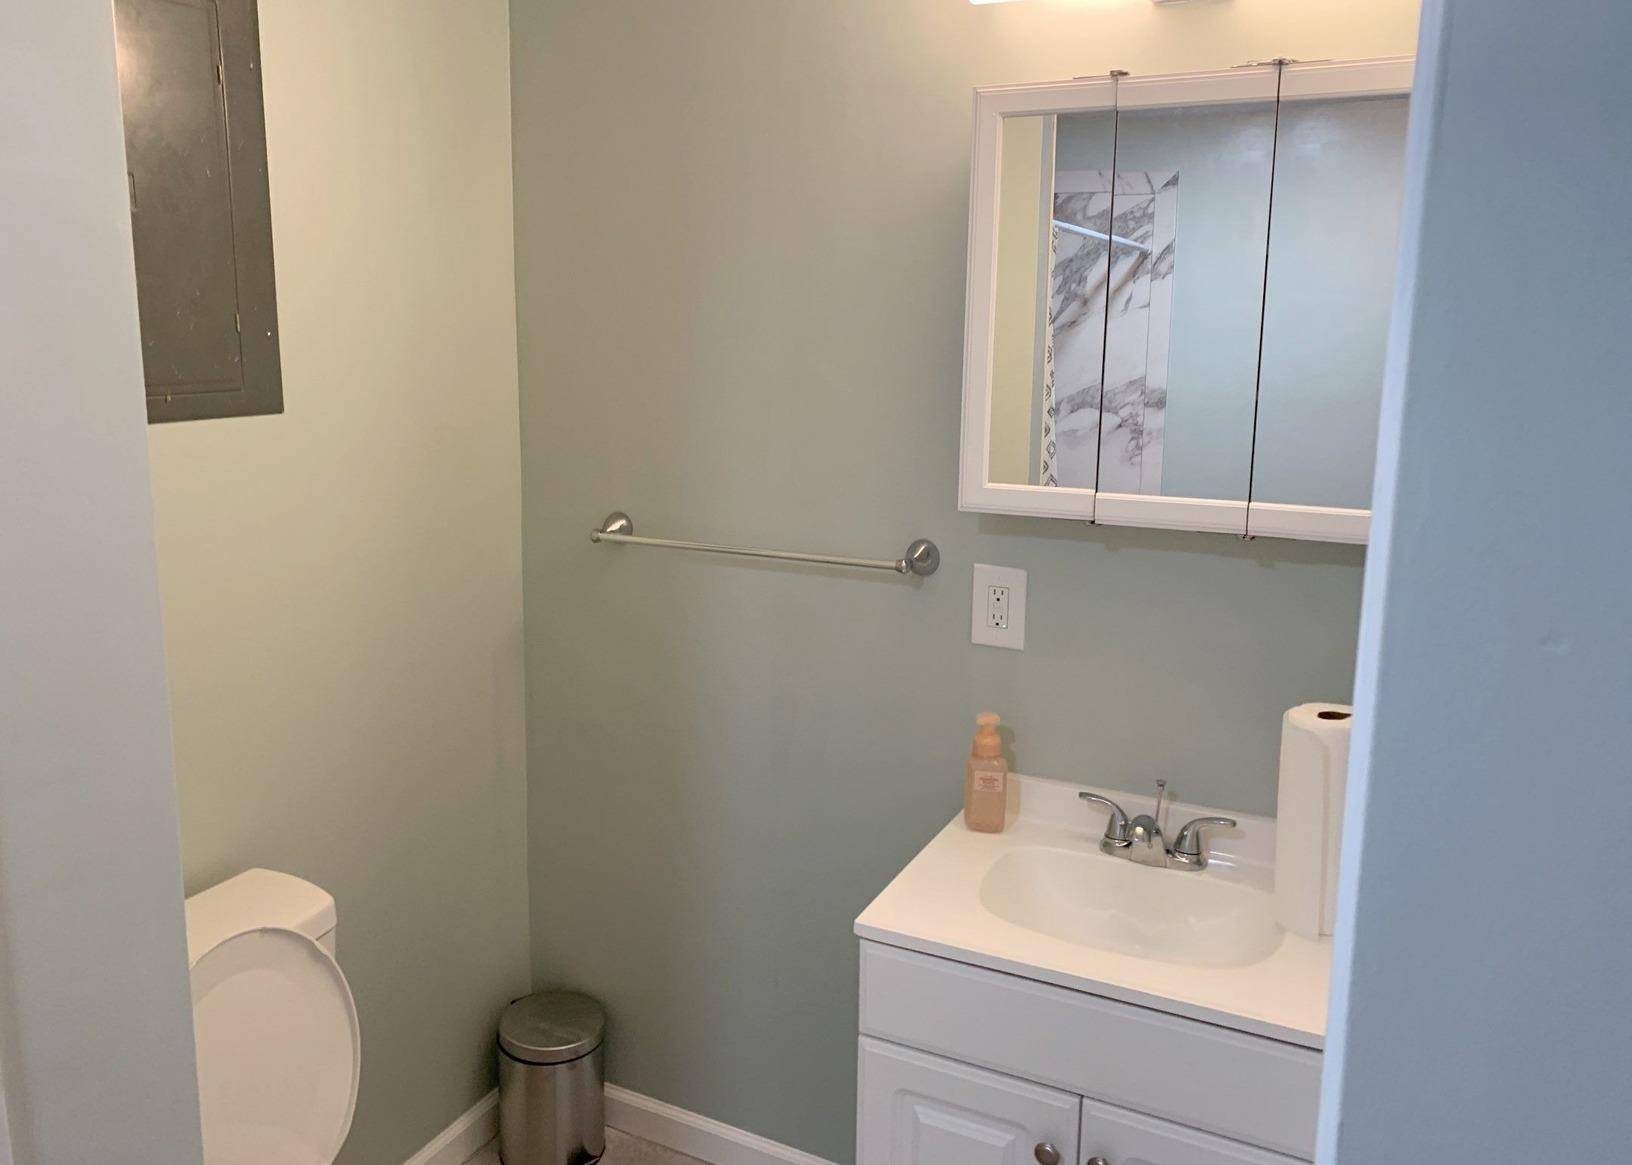 Bathroom Vanity, Mirror and Toilet Installed in a Basement in Grandview, MO - After Photo